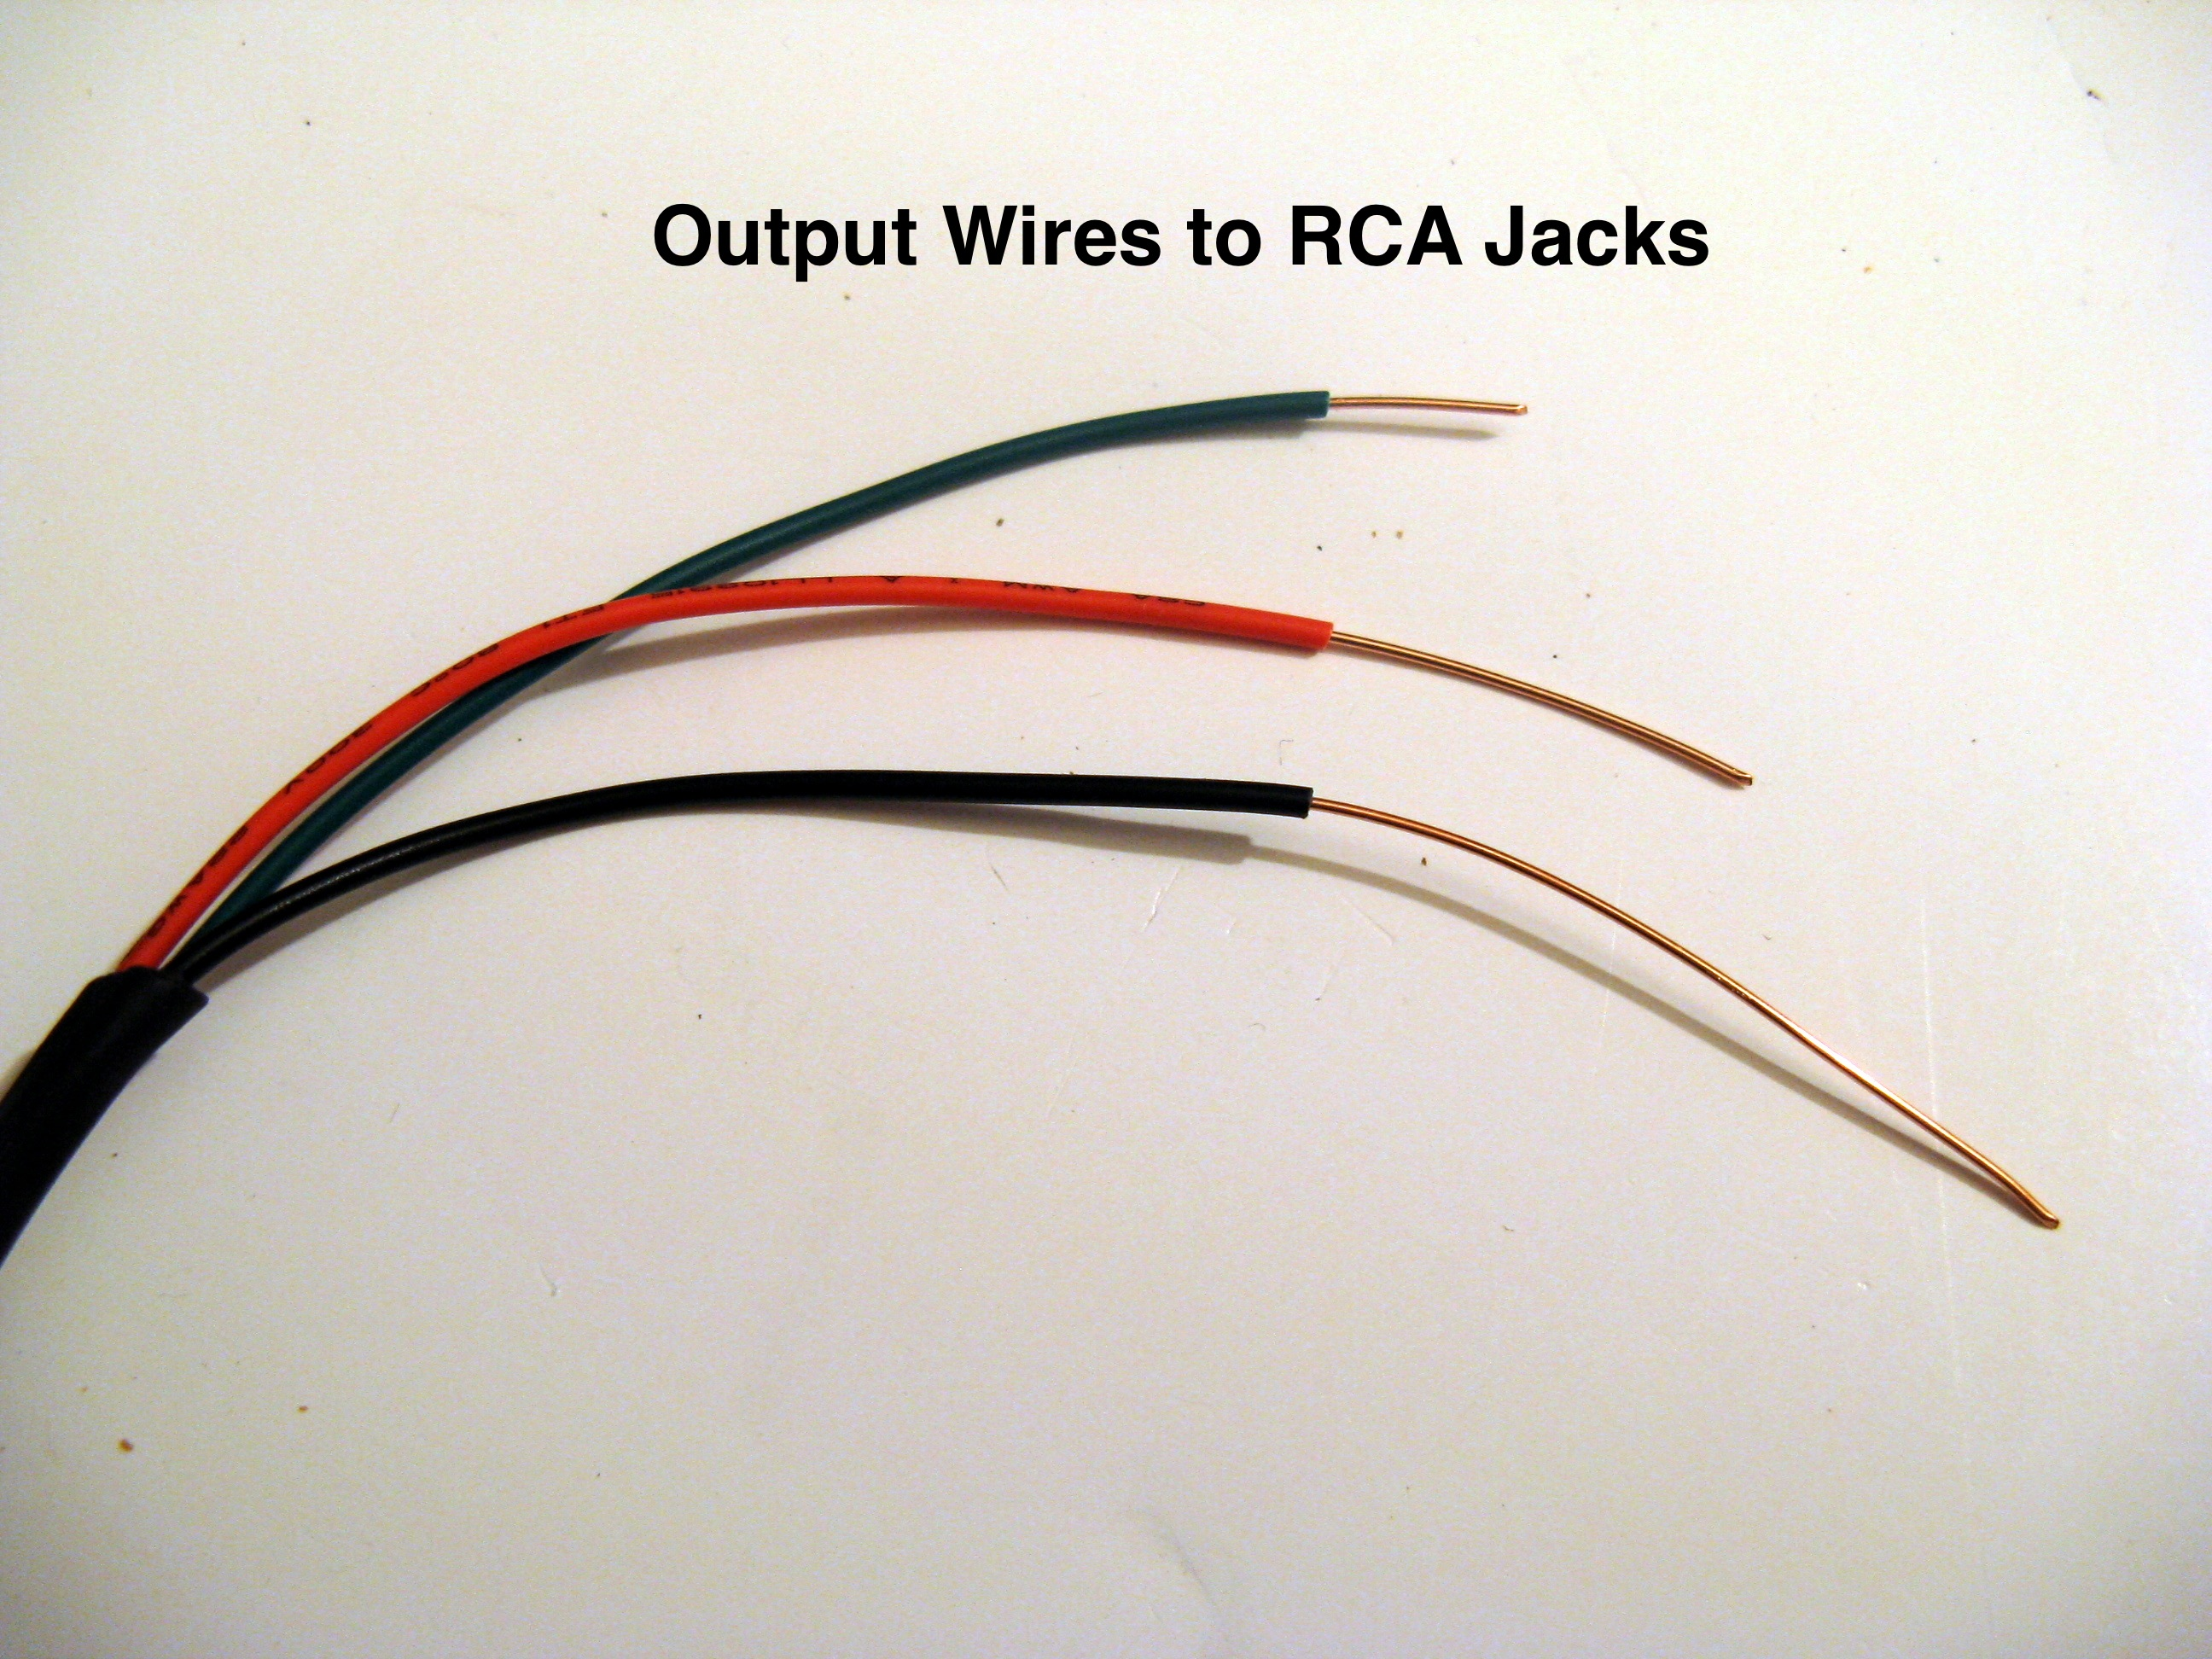 Wy 9231 Wiring An Outlet With Red Black And White Wires Free Diagram